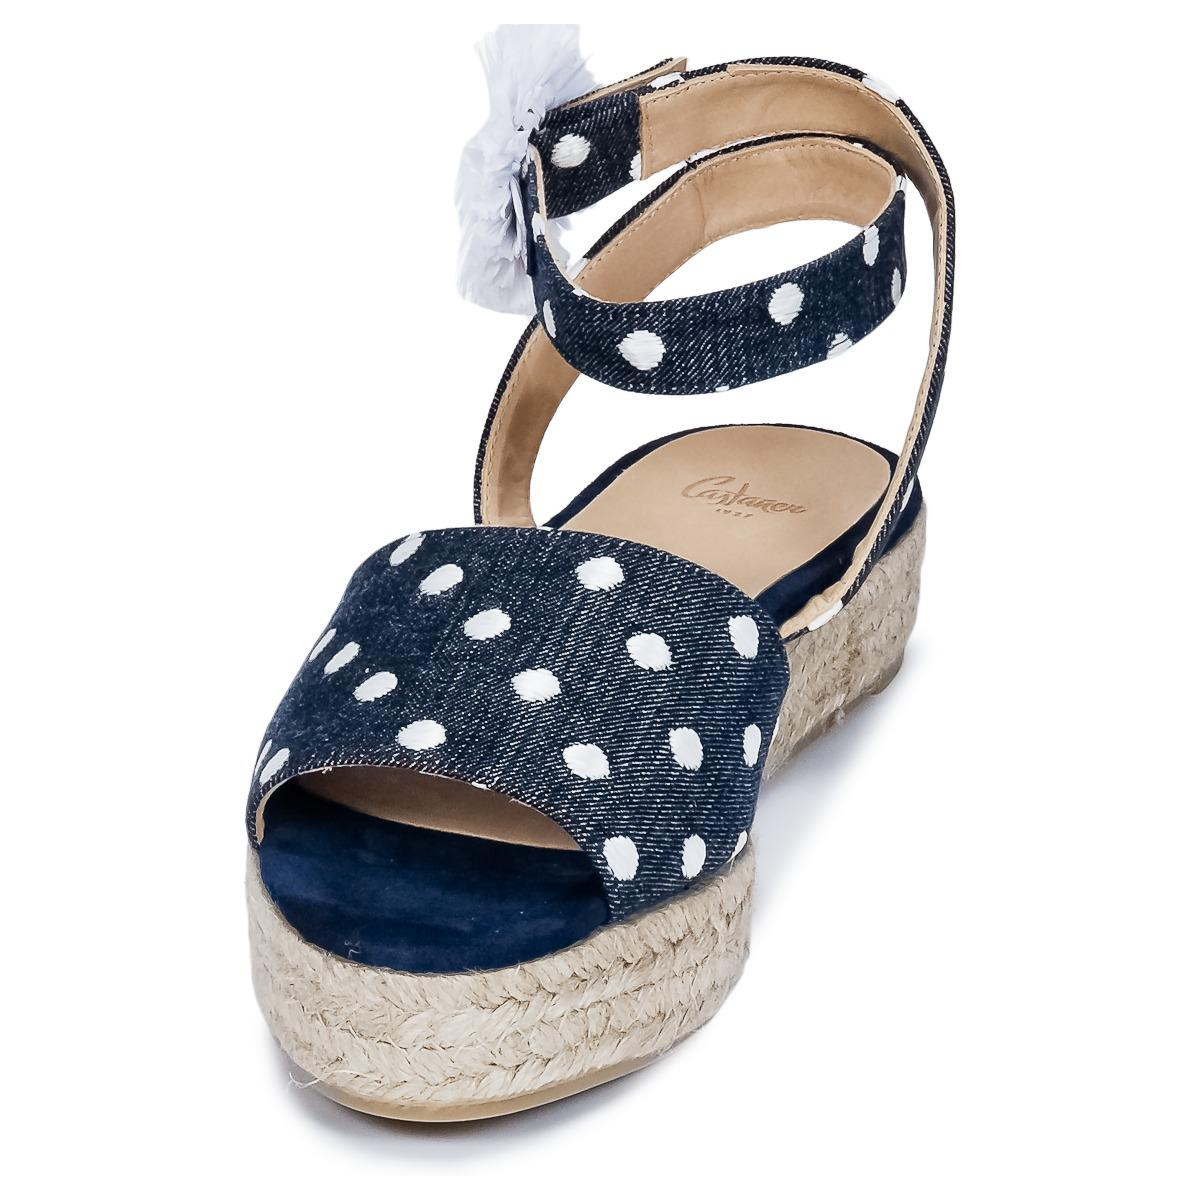 Top Quality Cheap Sale With Mastercard Castaner WOXOC women's Sandals in Pay With Visa Sale Online Visa Payment Clearance Very Cheap tLPhIa6jx